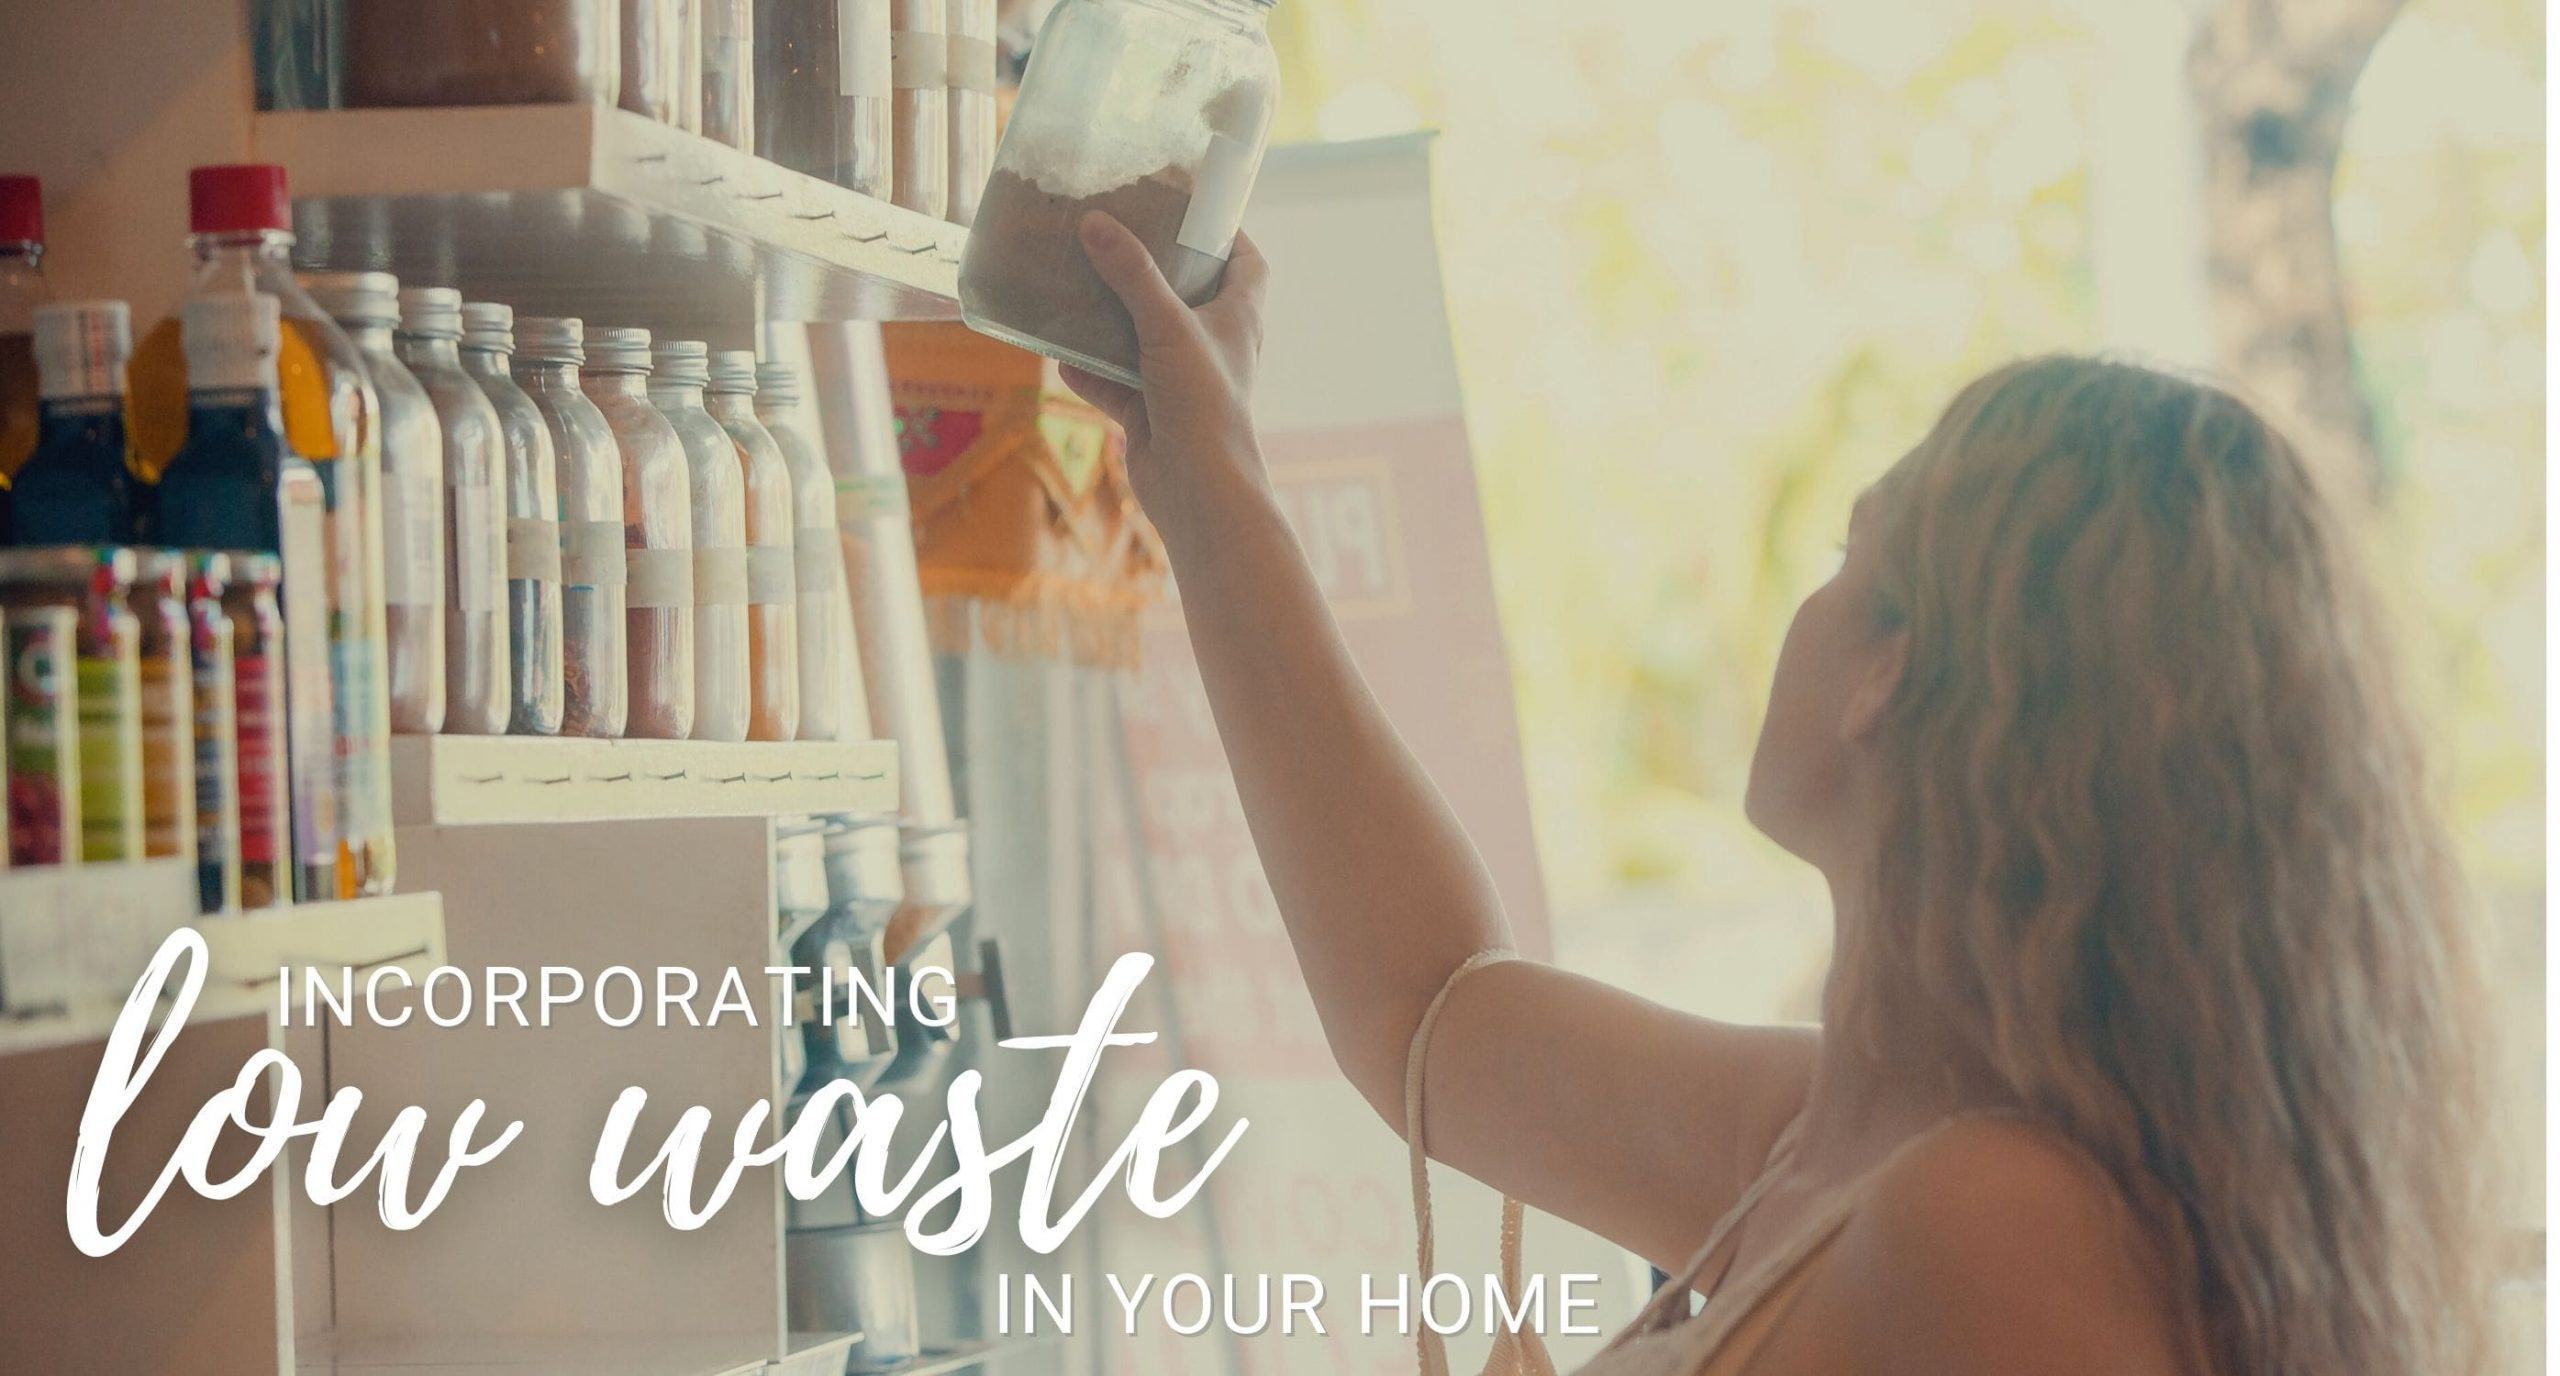 Shopping Woman to Low Waste at Home